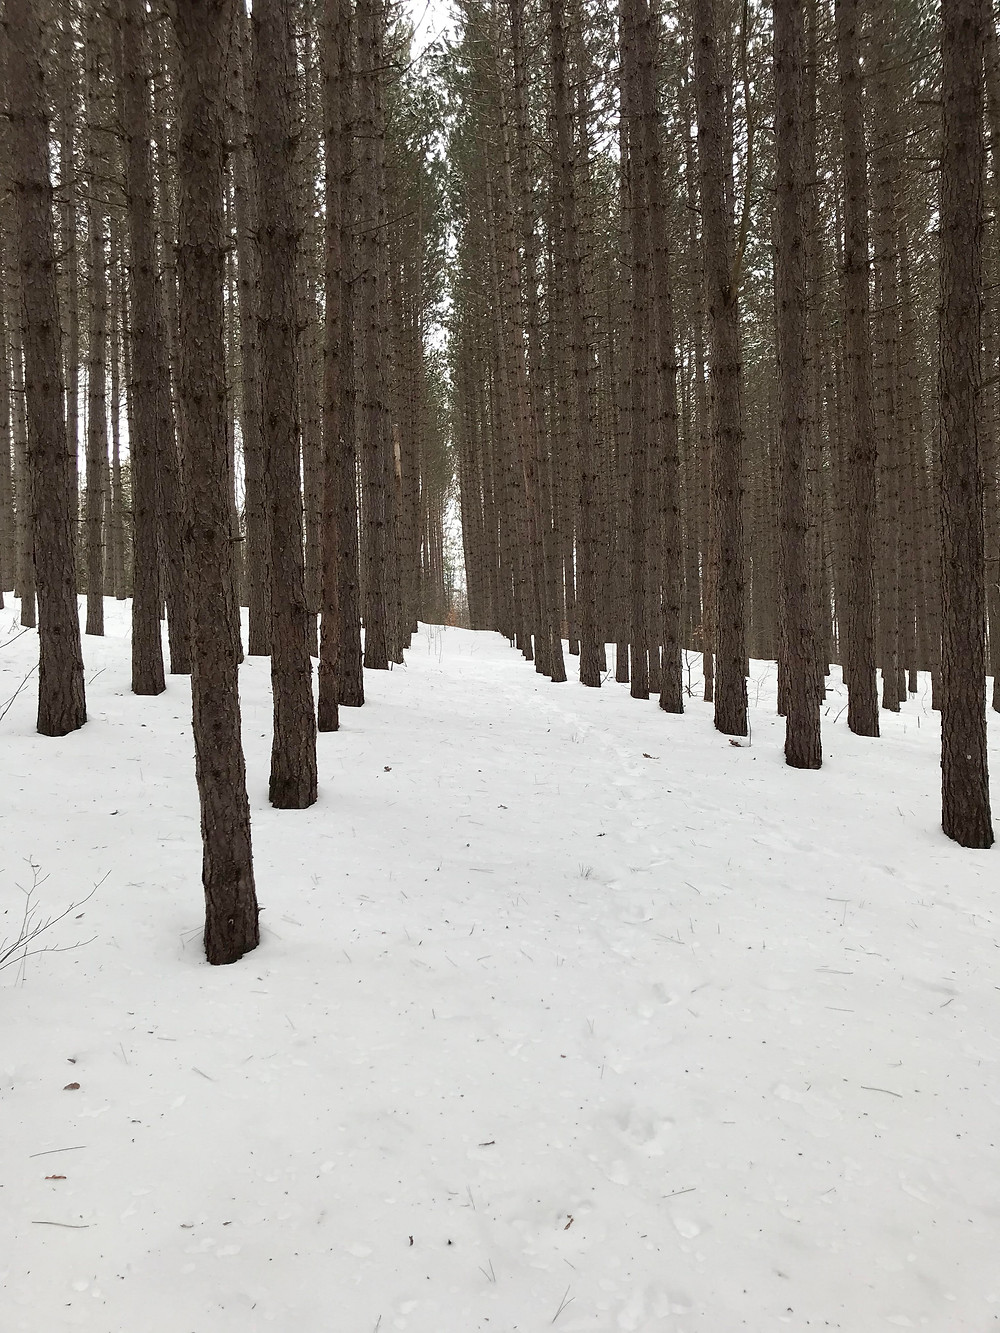 The woods at the start of the Bluff Mountain Trail